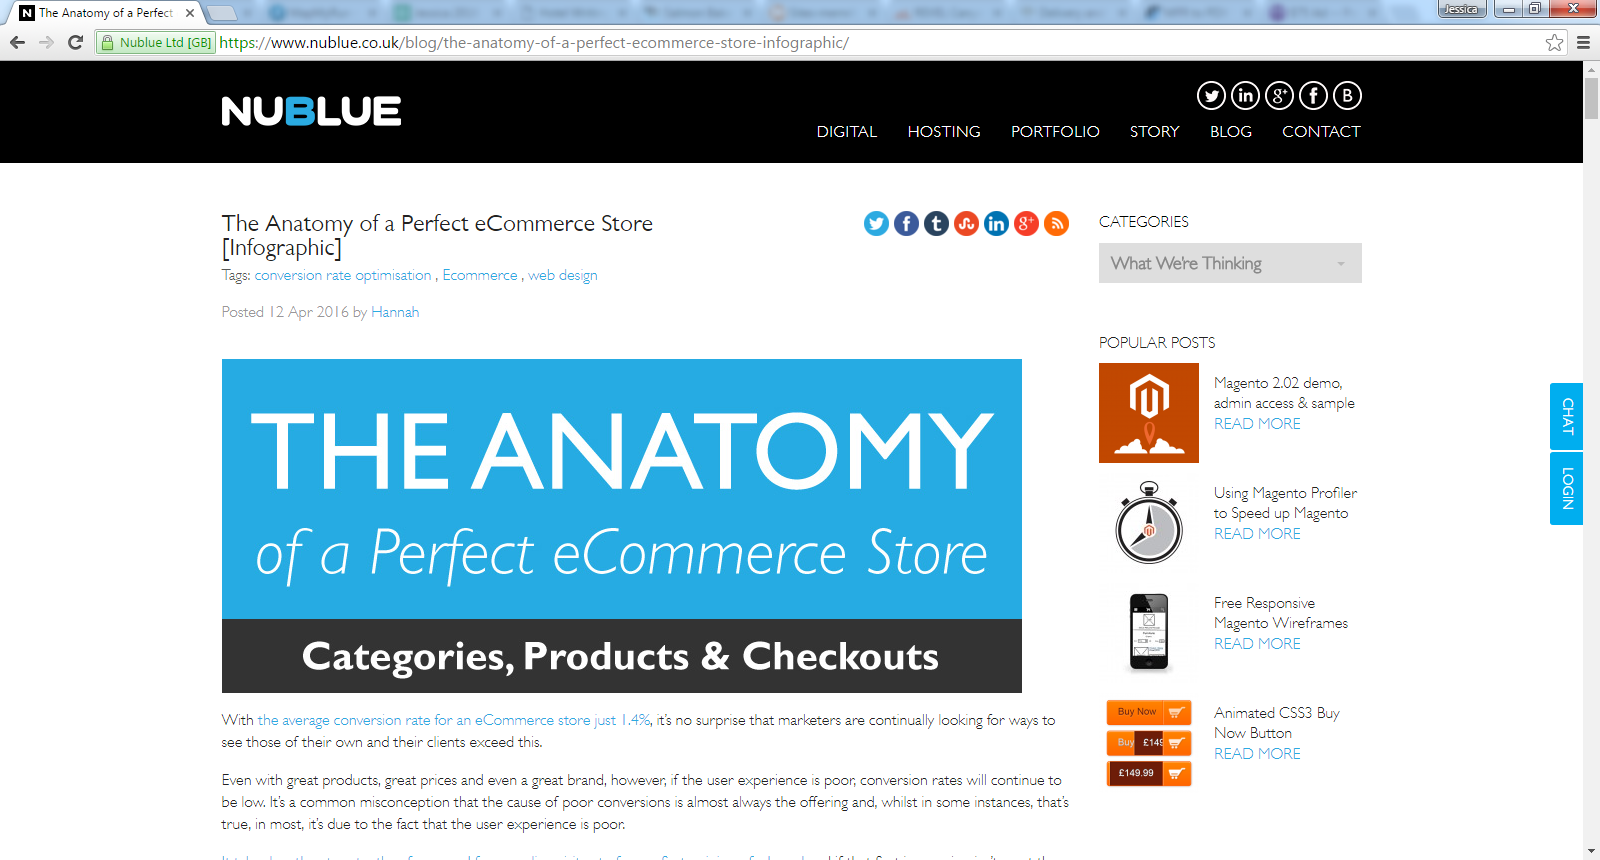 The Anatomy of a Perfect eCommerce Store - Meet John Rampton ...